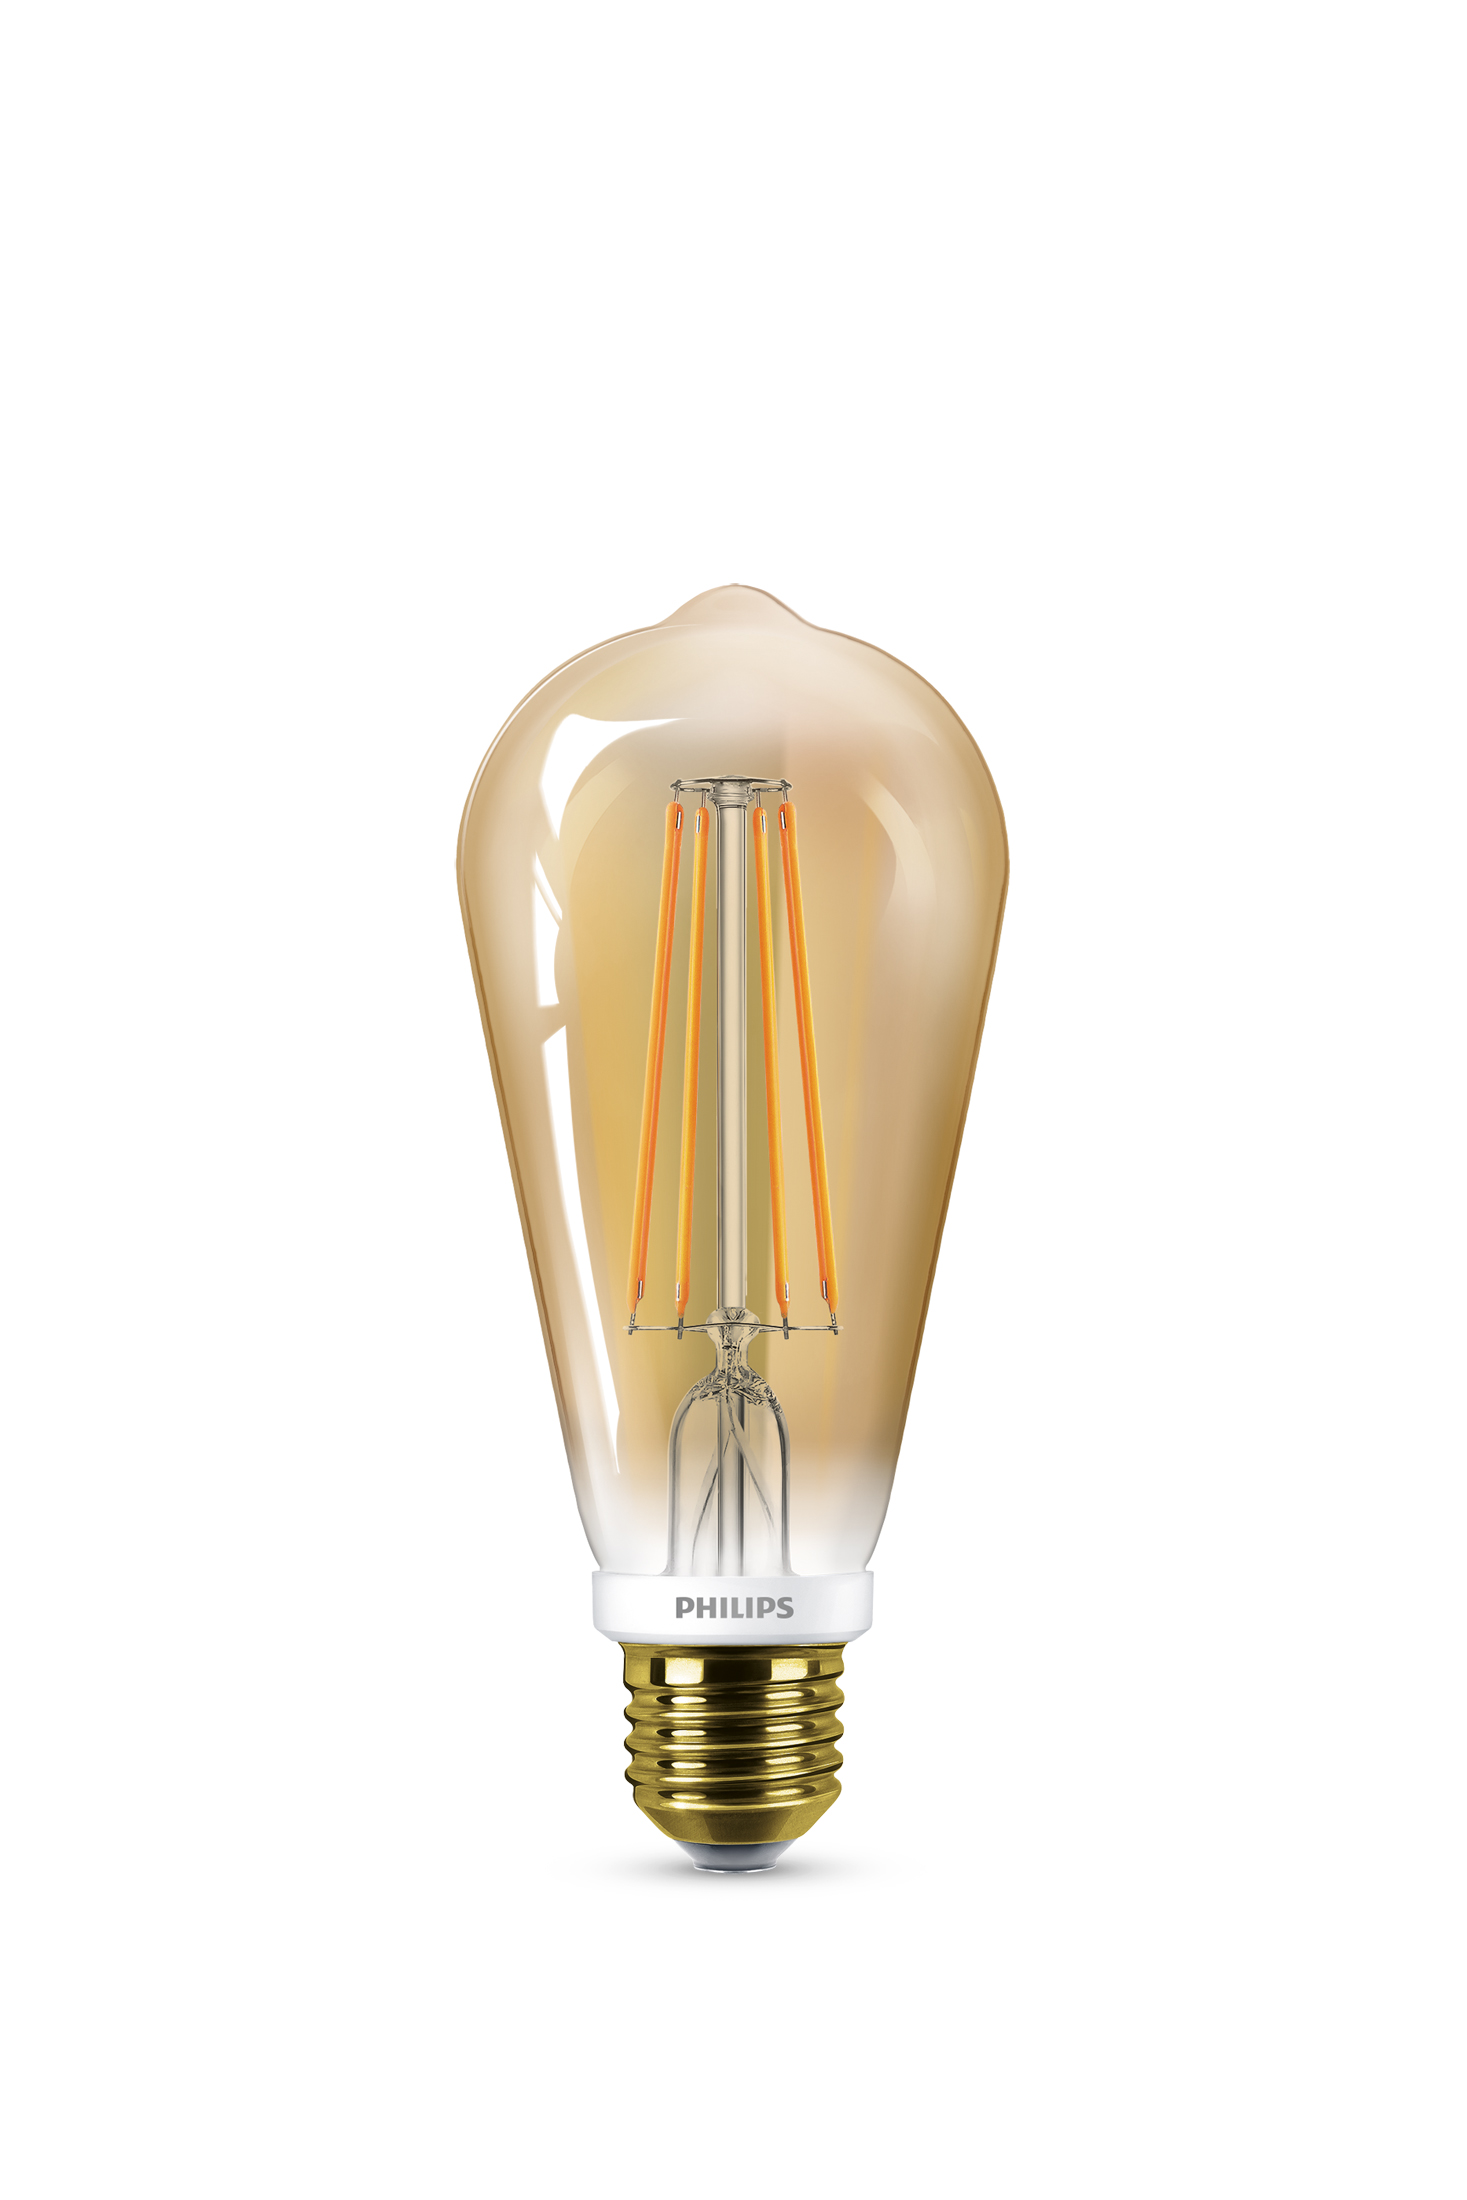 Bekannt Vintage LED-Lampen von Philips Lighting - Newsroom Philips Lighting IE51